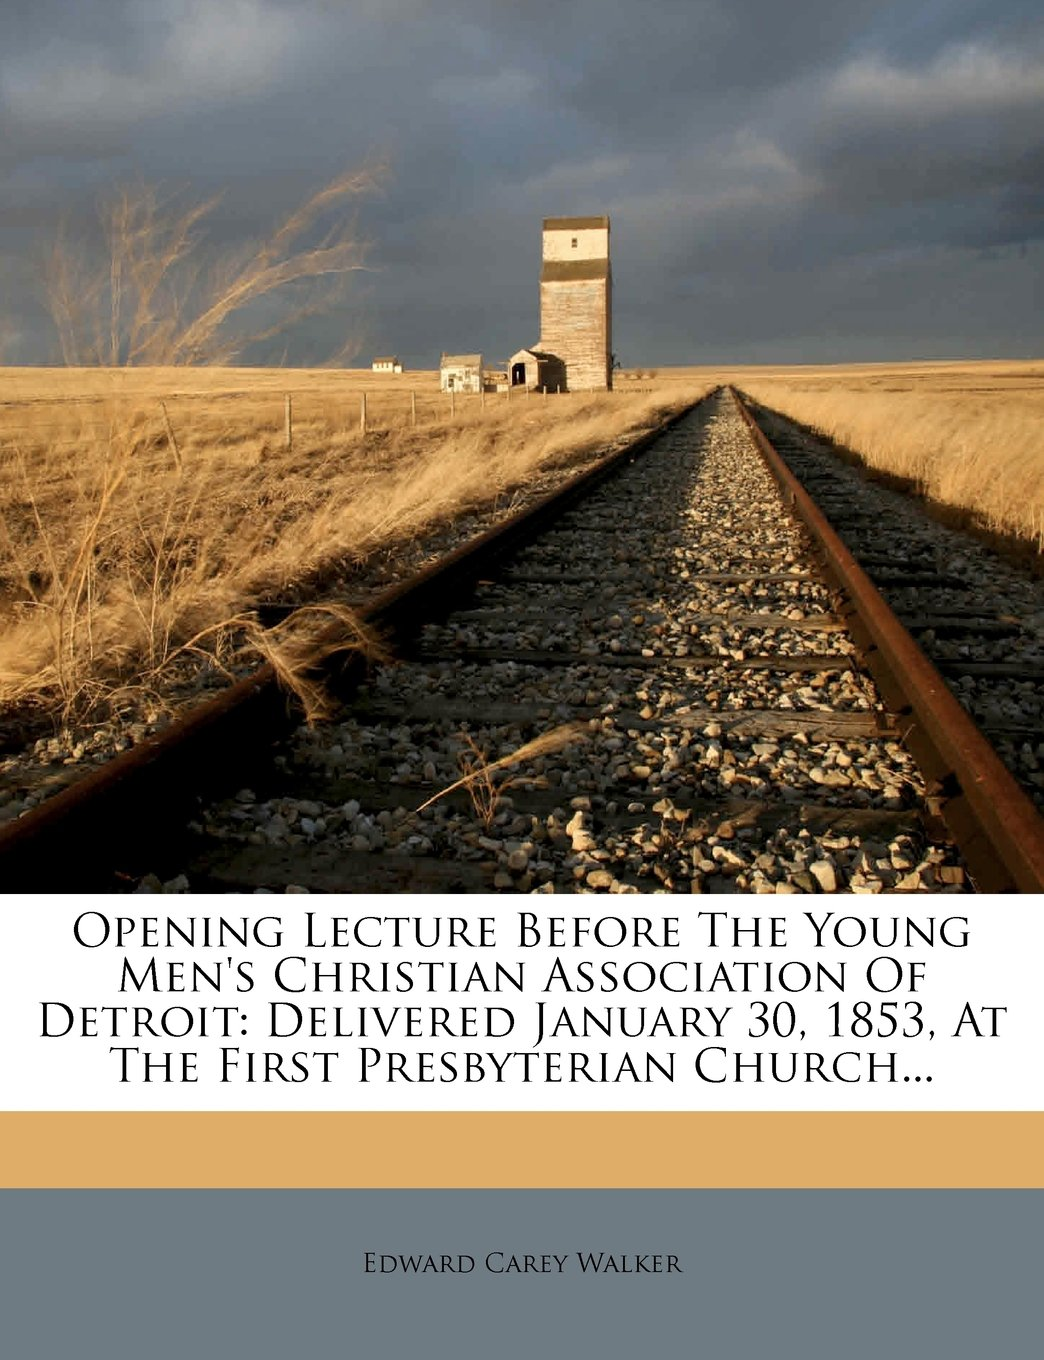 Opening Lecture Before The Young Men's Christian Association Of Detroit: Delivered January 30, 1853, At The First Presbyterian Church... PDF